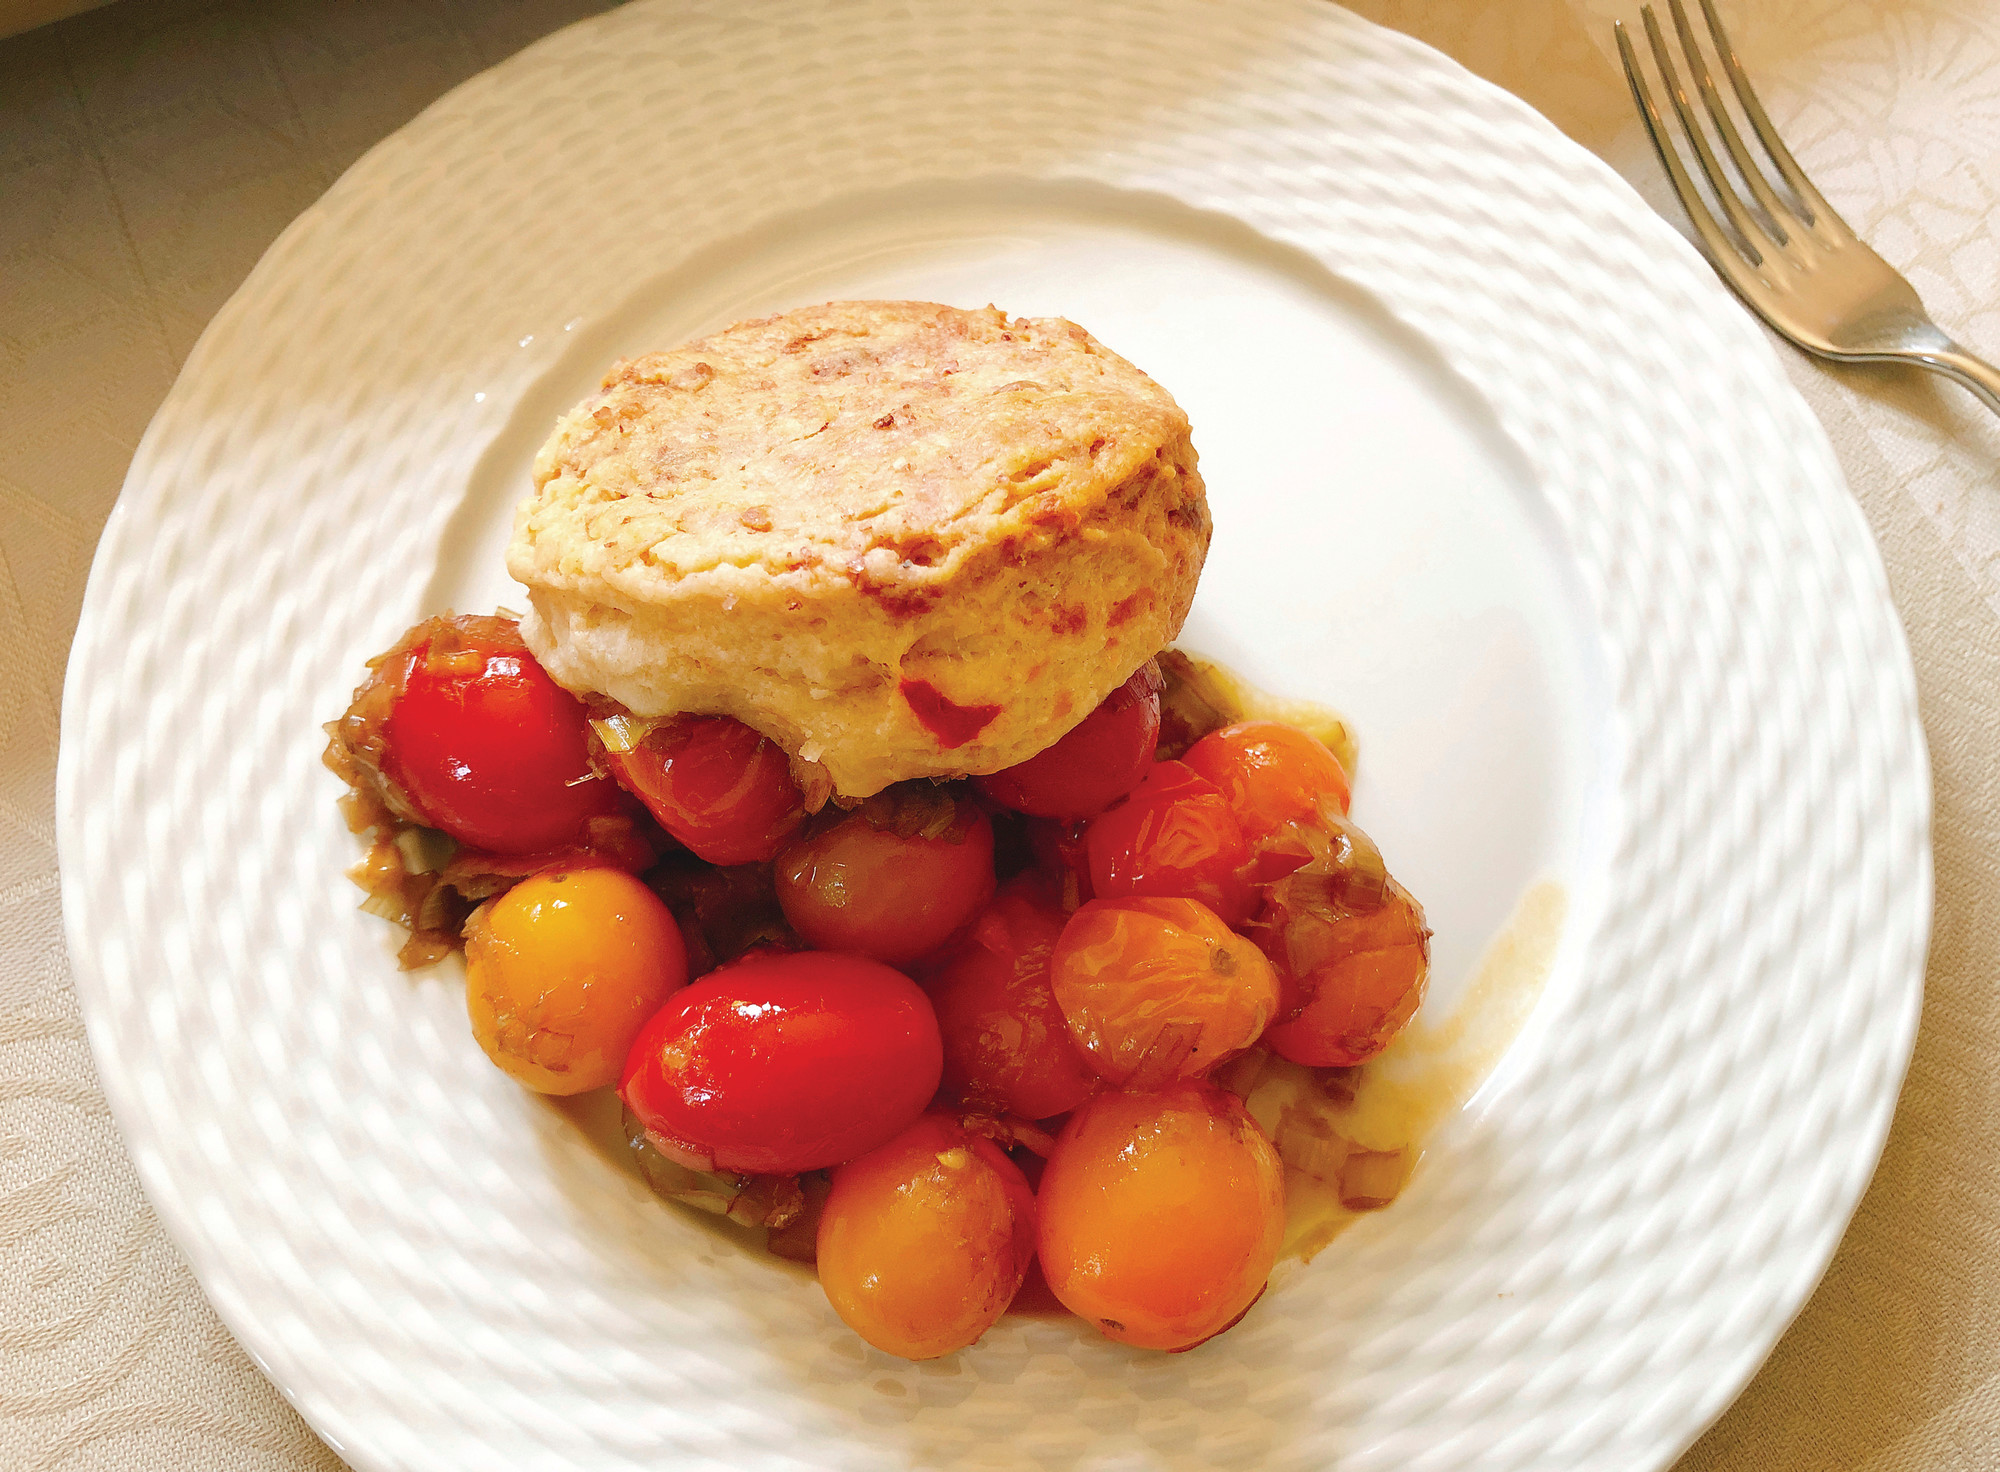 Cherry tomato cobbler with pimento cheese biscuits